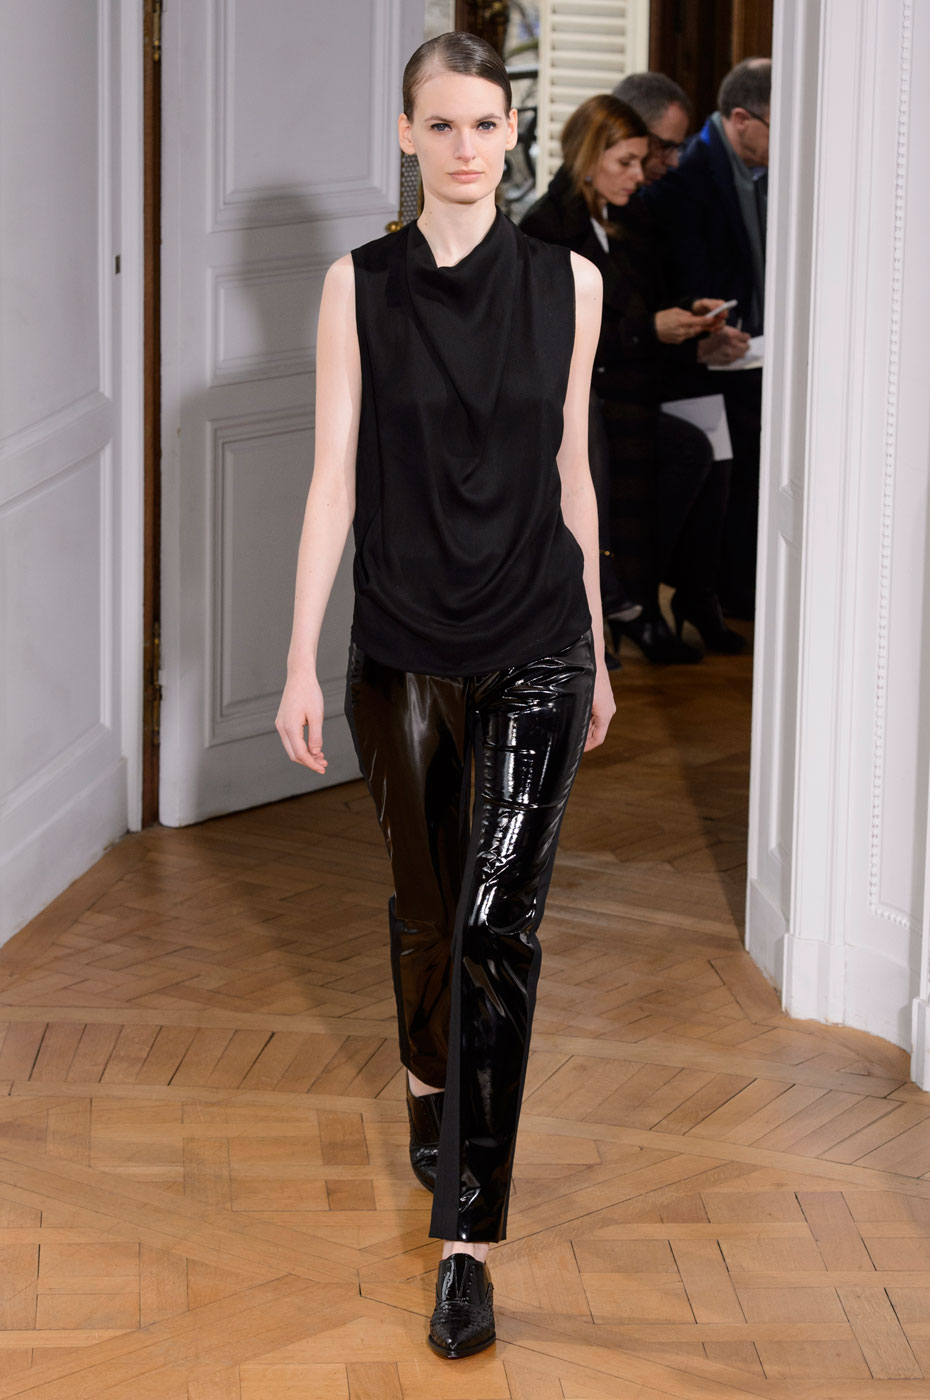 Bouchra-Jarrar-fashion-runway-show-haute-couture-paris-spring-summer-2015-the-impression-11